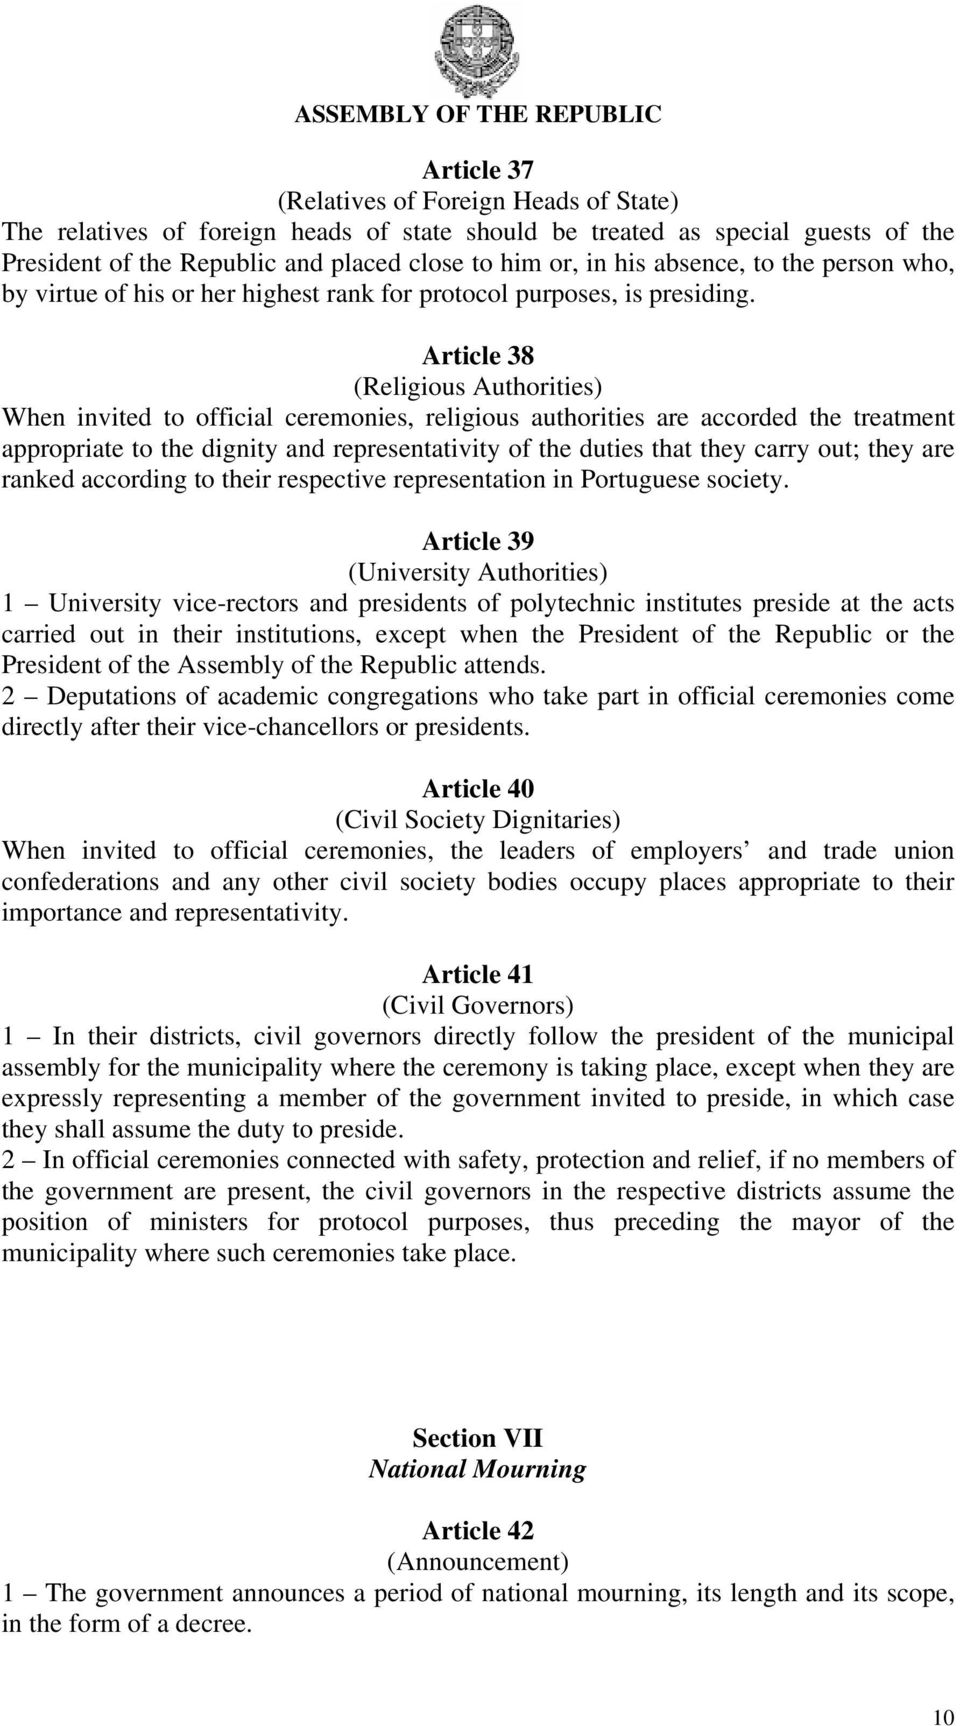 Article 38 (Religious Authorities) When invited to official ceremonies, religious authorities are accorded the treatment appropriate to the dignity and representativity of the duties that they carry